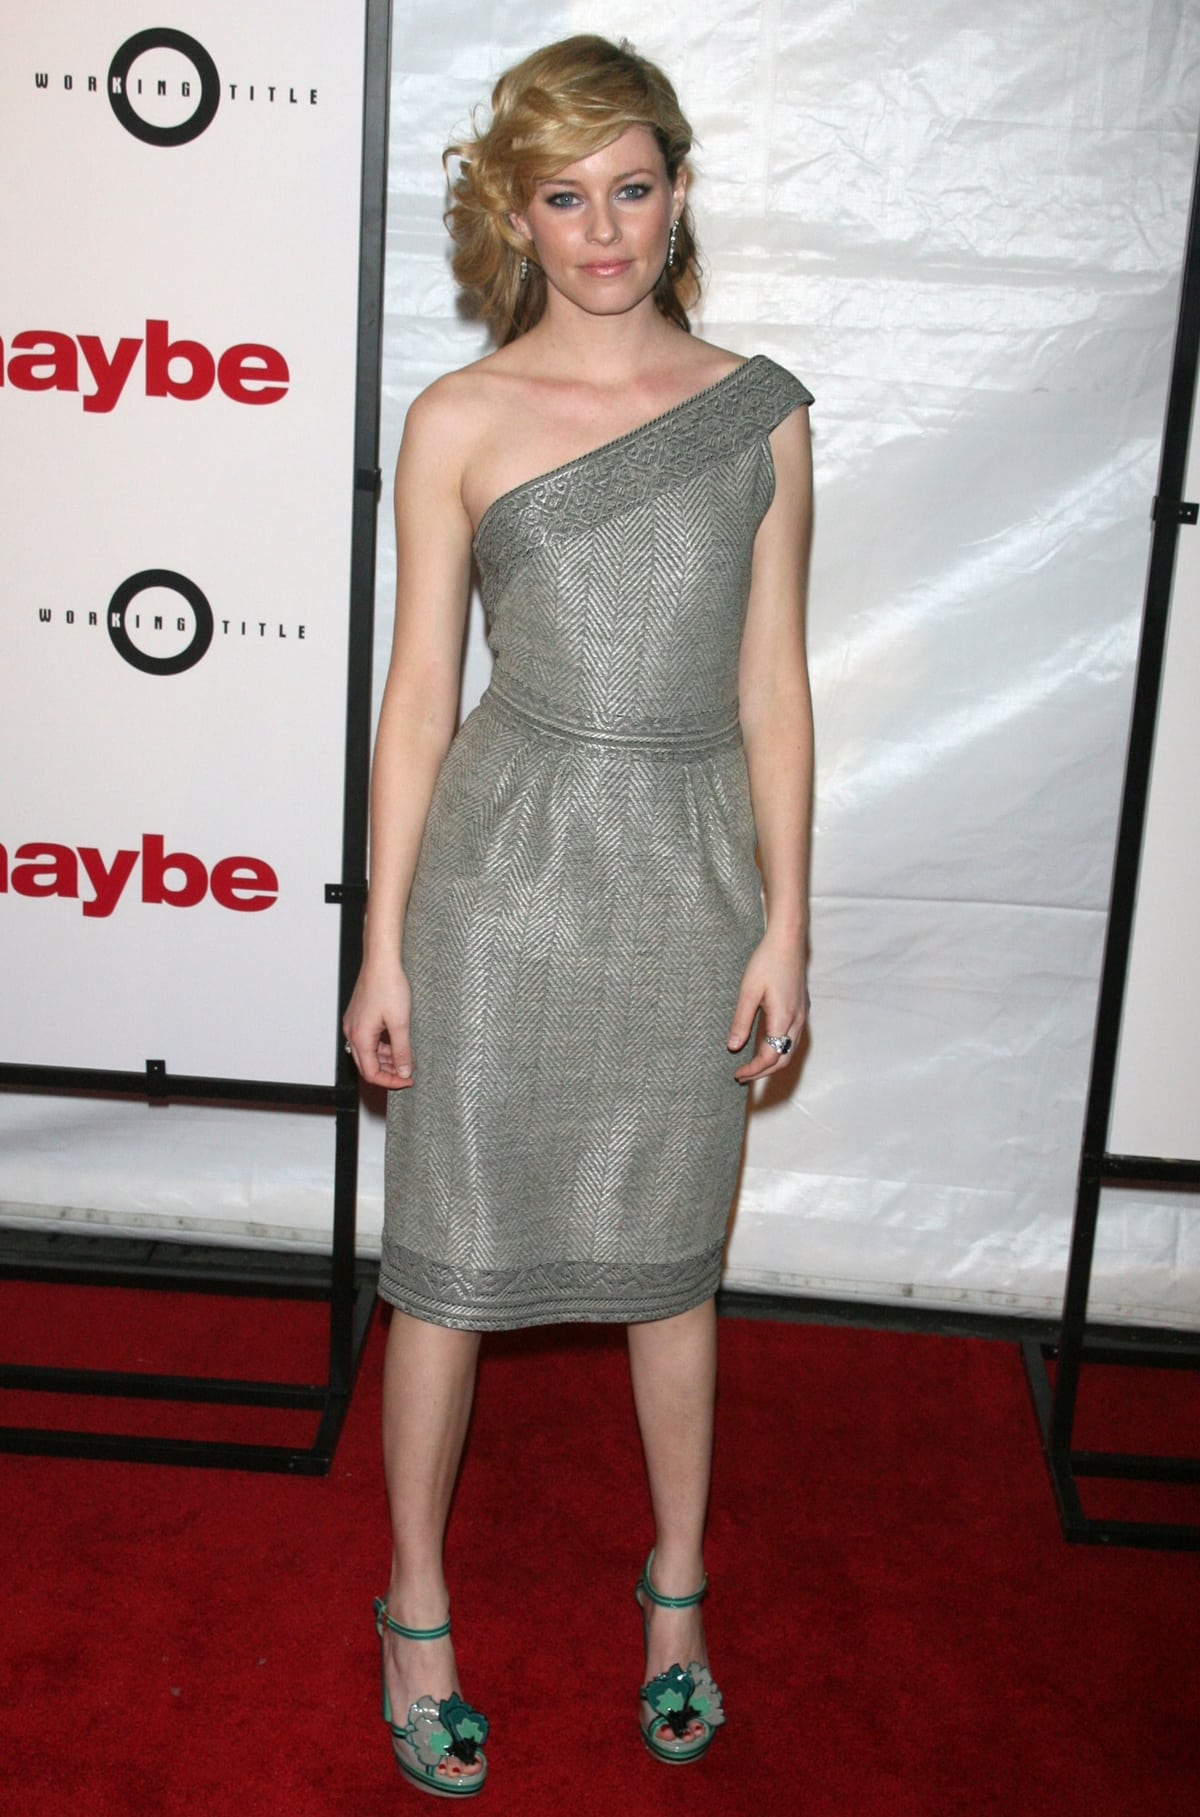 Actress Elizabeth Banks flaunts her legs at the premiere of Definitely, Maybe